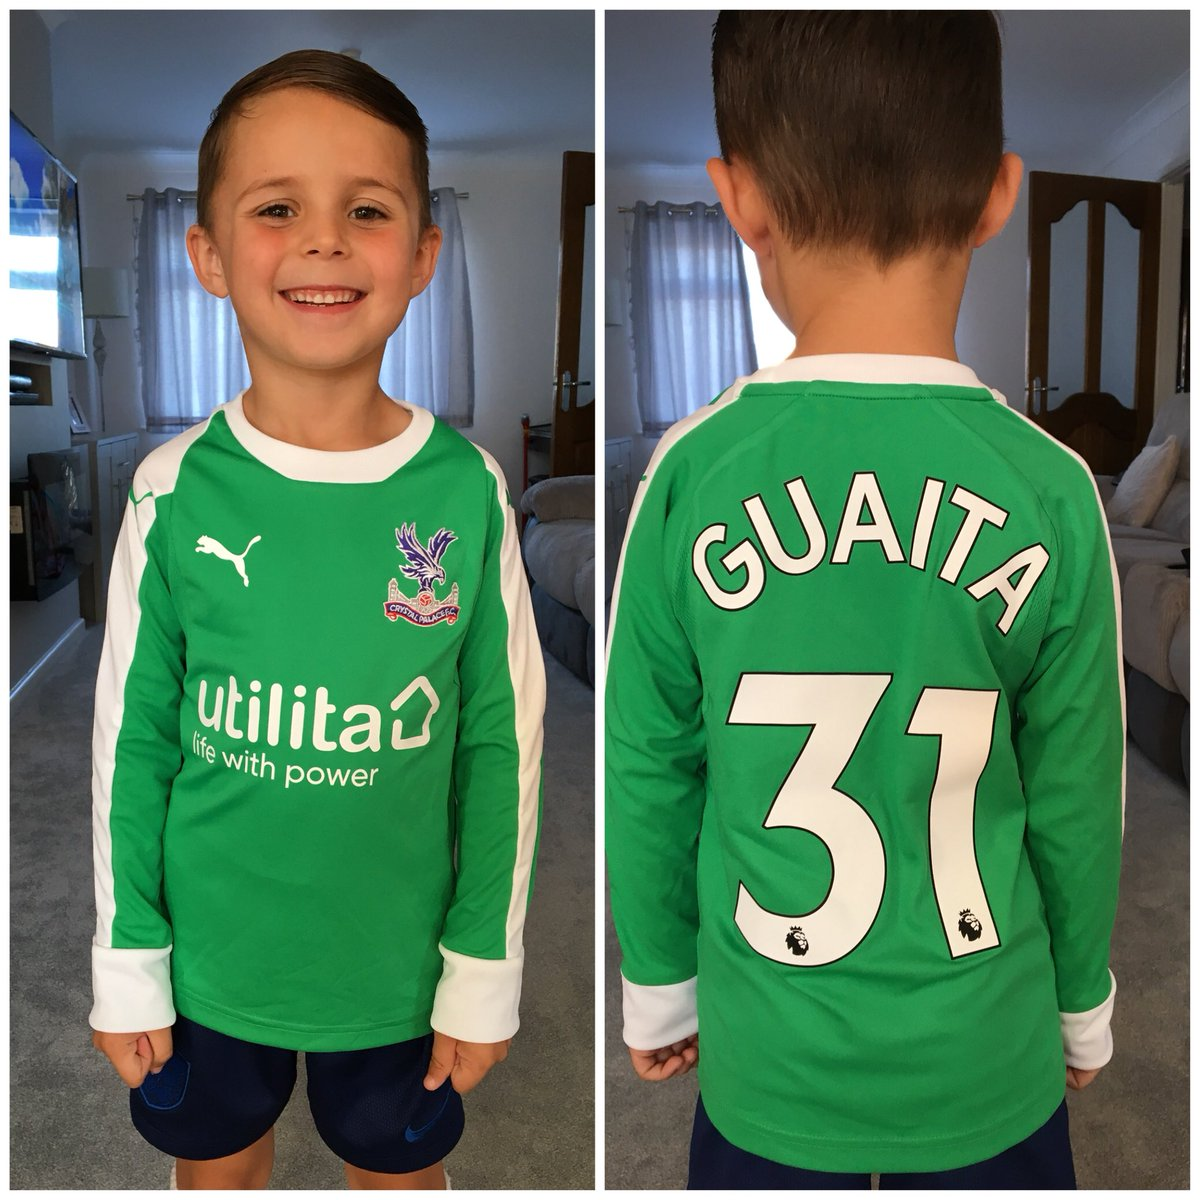 Guaita On Twitter I Really Liked Seeing You With The Shirt My